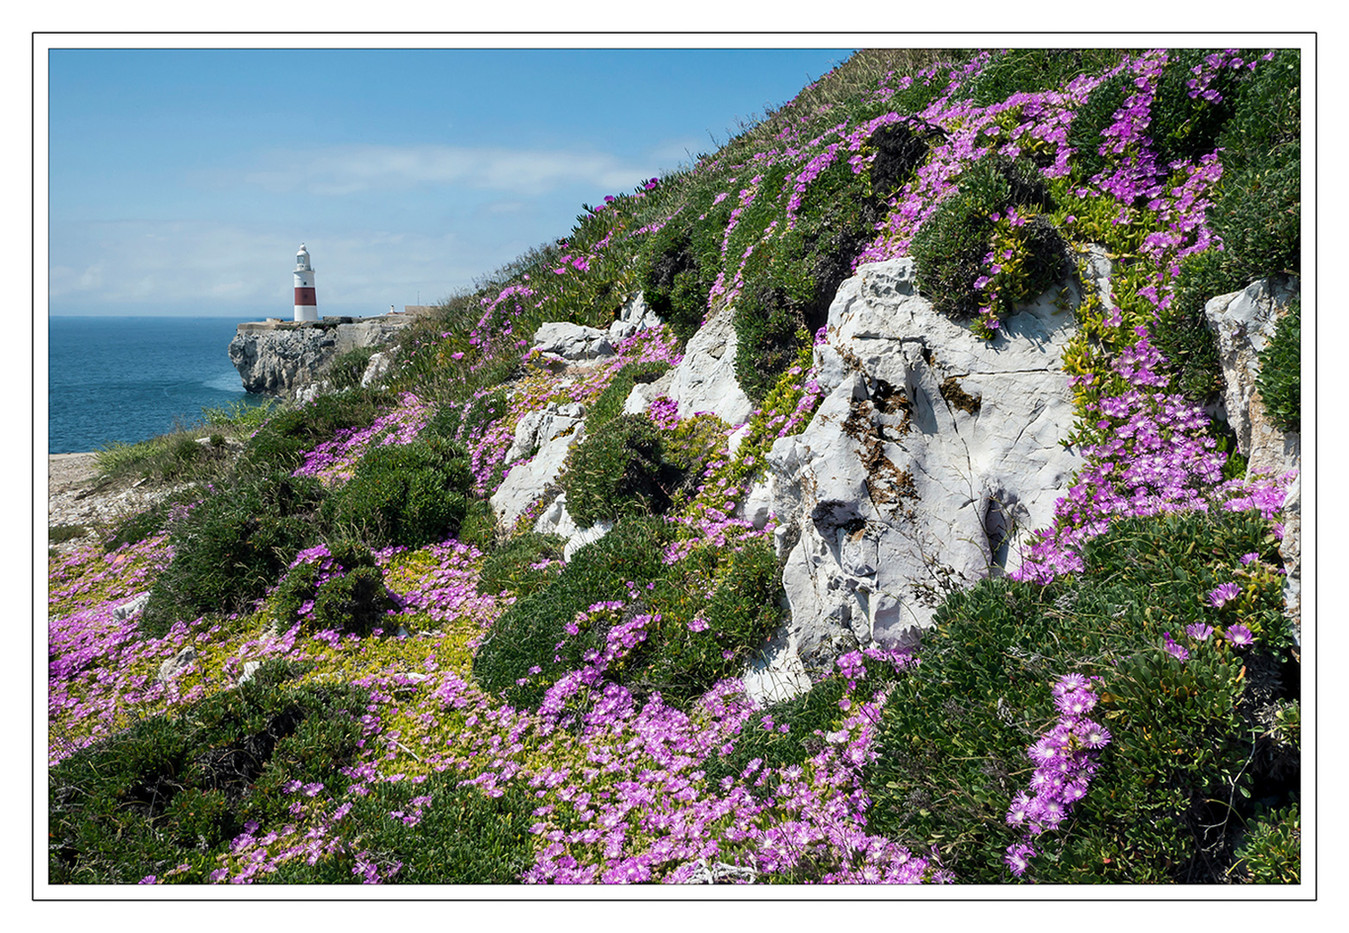 16 FLORA AT EUROPA POINT GIBRALTAR by Mike Shave